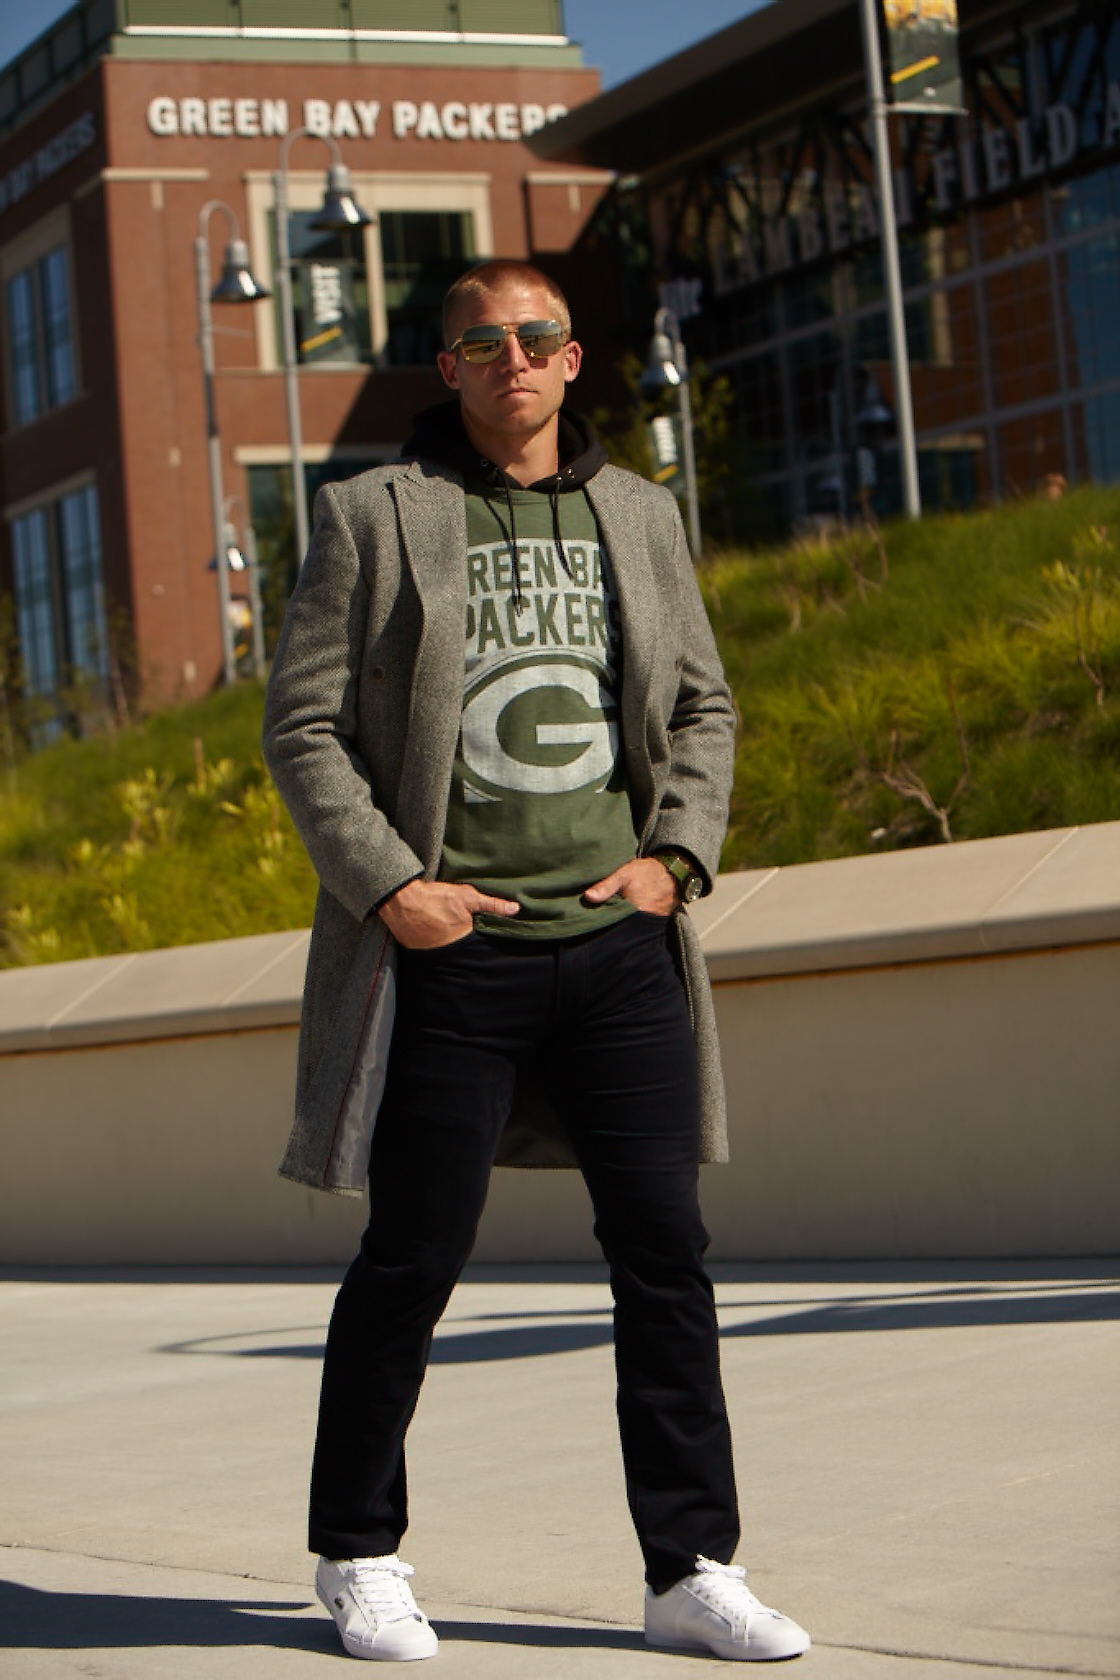 jacket GRUNGY GENTLEMAN | t-shirt NFL | hoodie I LOVE UGLY | glasses MATSUIDA | pants DOCKERS | watch VICTORINOX | shoes LACOSTE